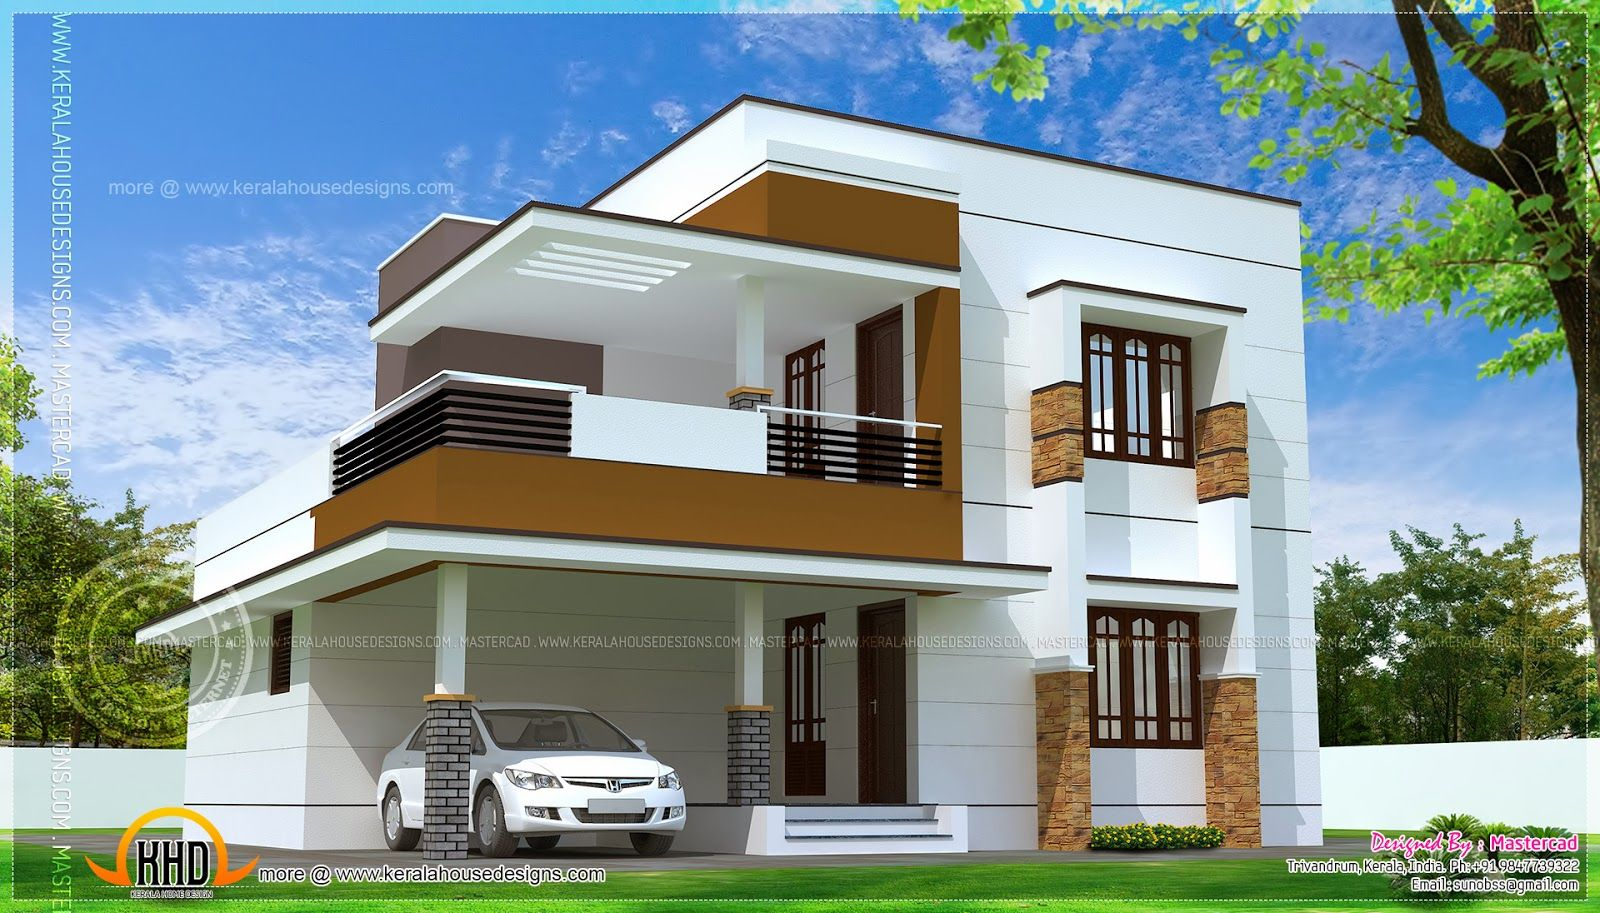 House front view design ideas